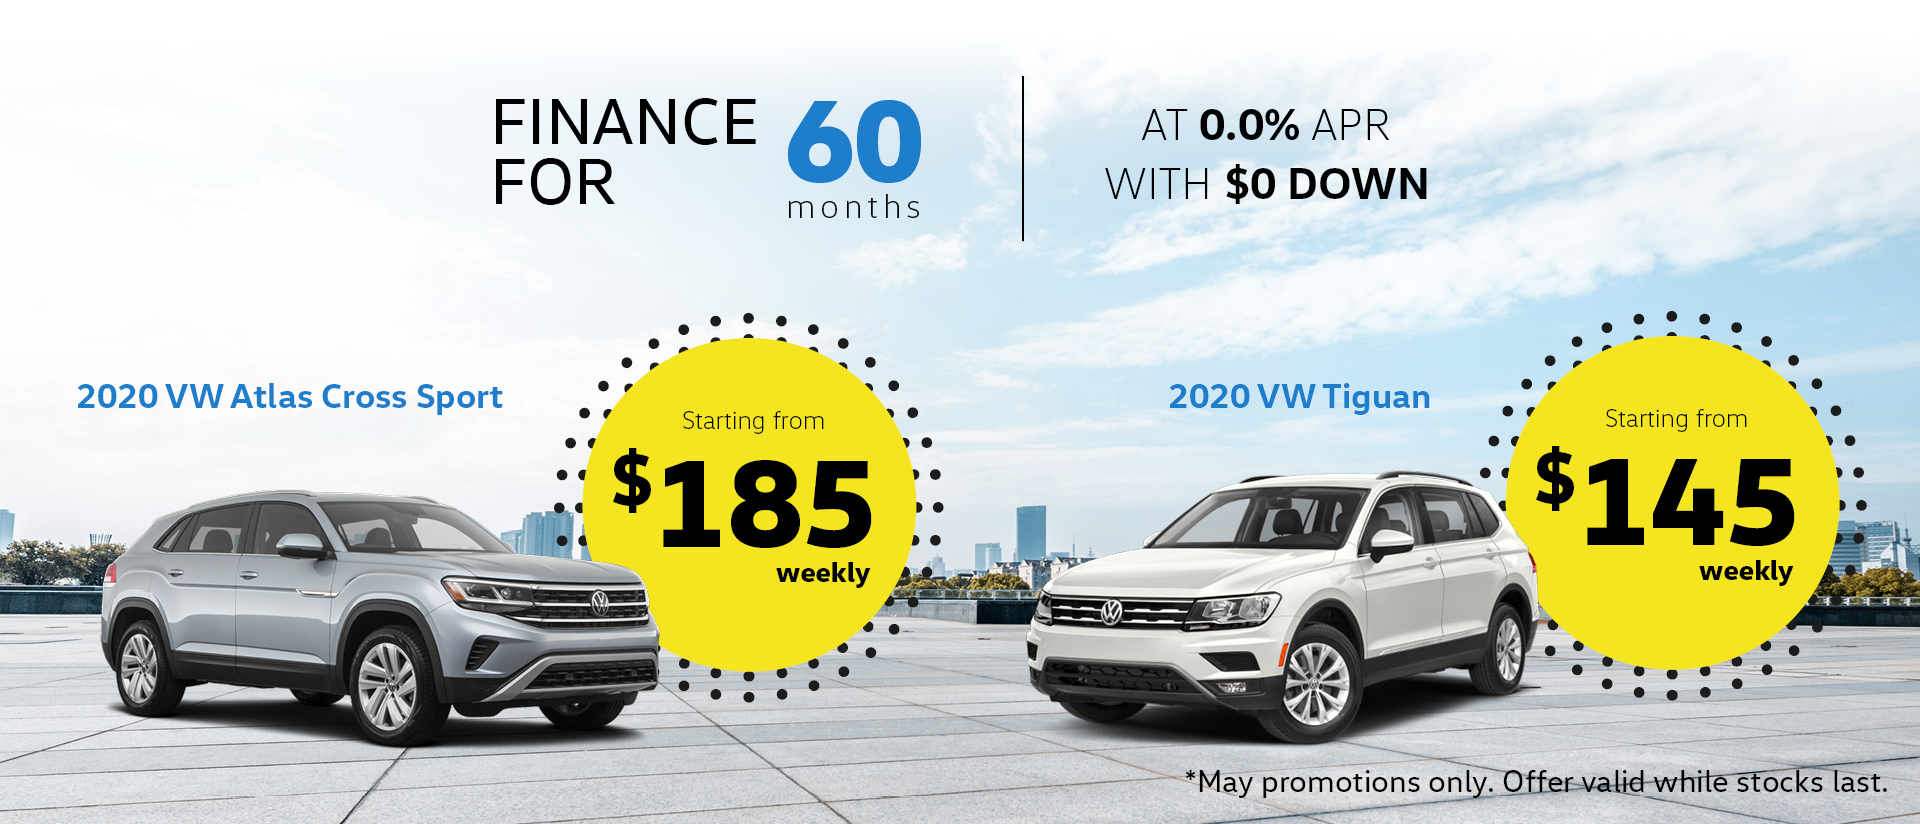 609a 21 Mississauga Vw 2020 Offers